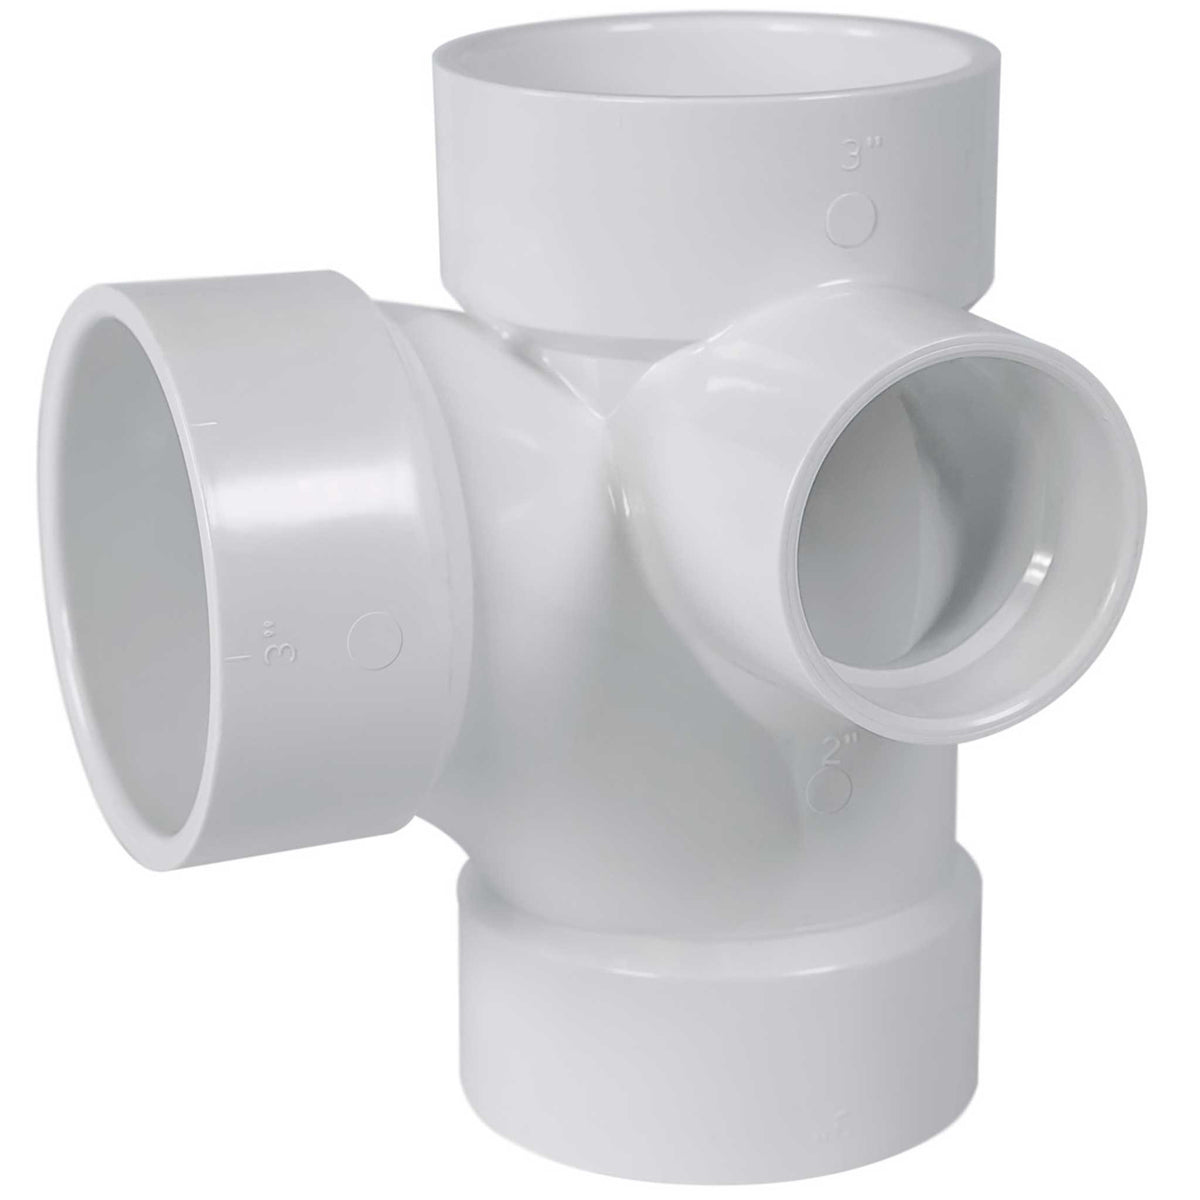 Schedule 40 PVC DWV Sanitary Tee w/ Left Side Inlet